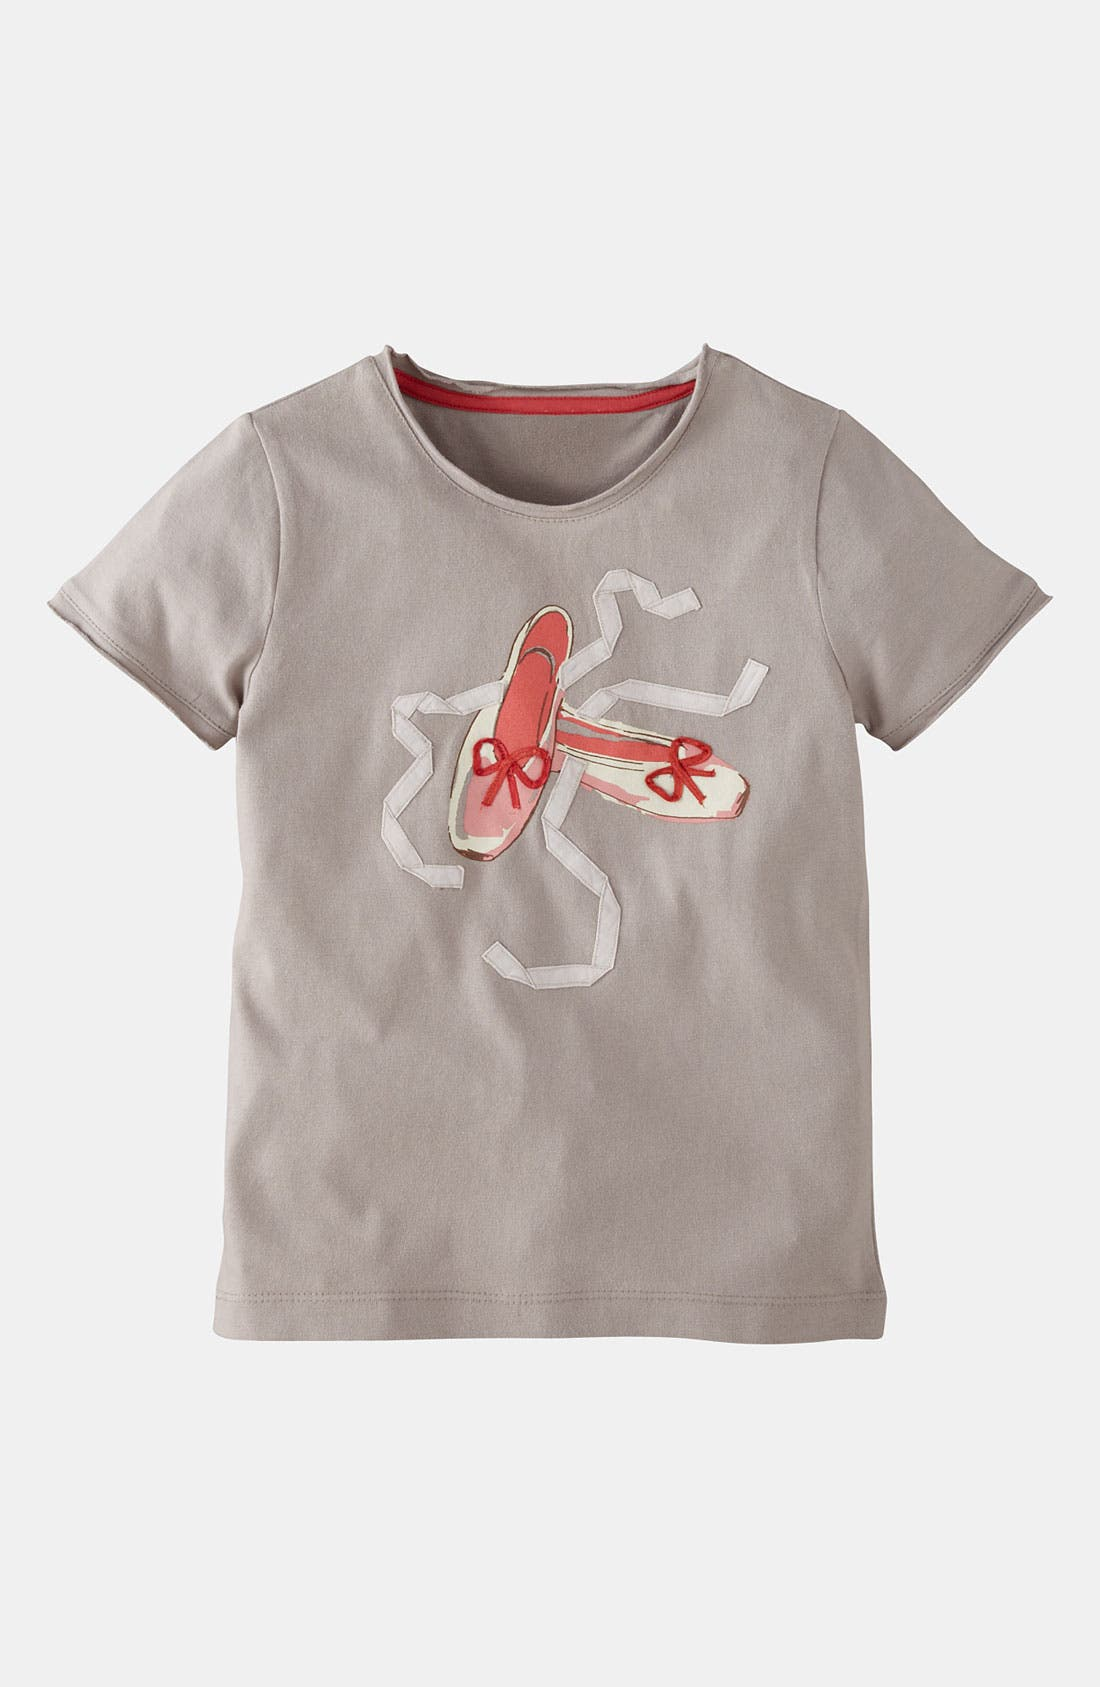 Main Image - Mini Boden 'Pretty' Appliqué Tee (Toddler Girls)